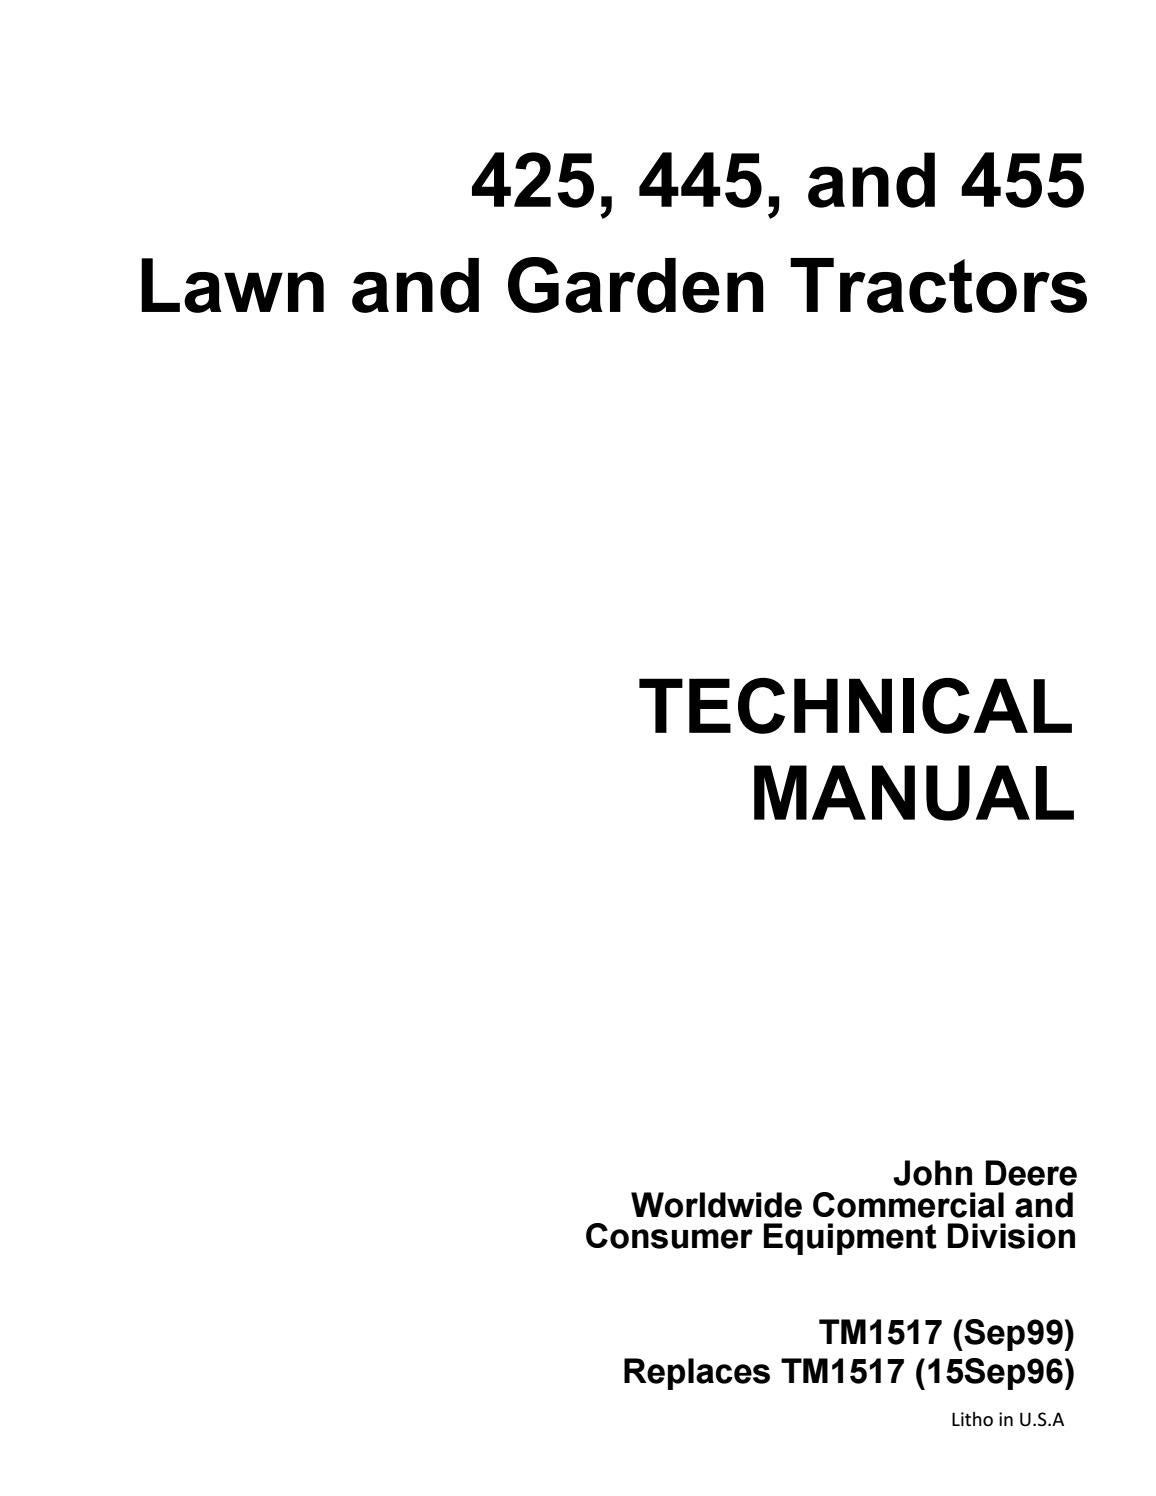 John Deere 455 Parts Diagram : deere, parts, diagram, DEERE, GARDEN, TRACTOR, Service, Repair, Manual, 163114103, Issuu